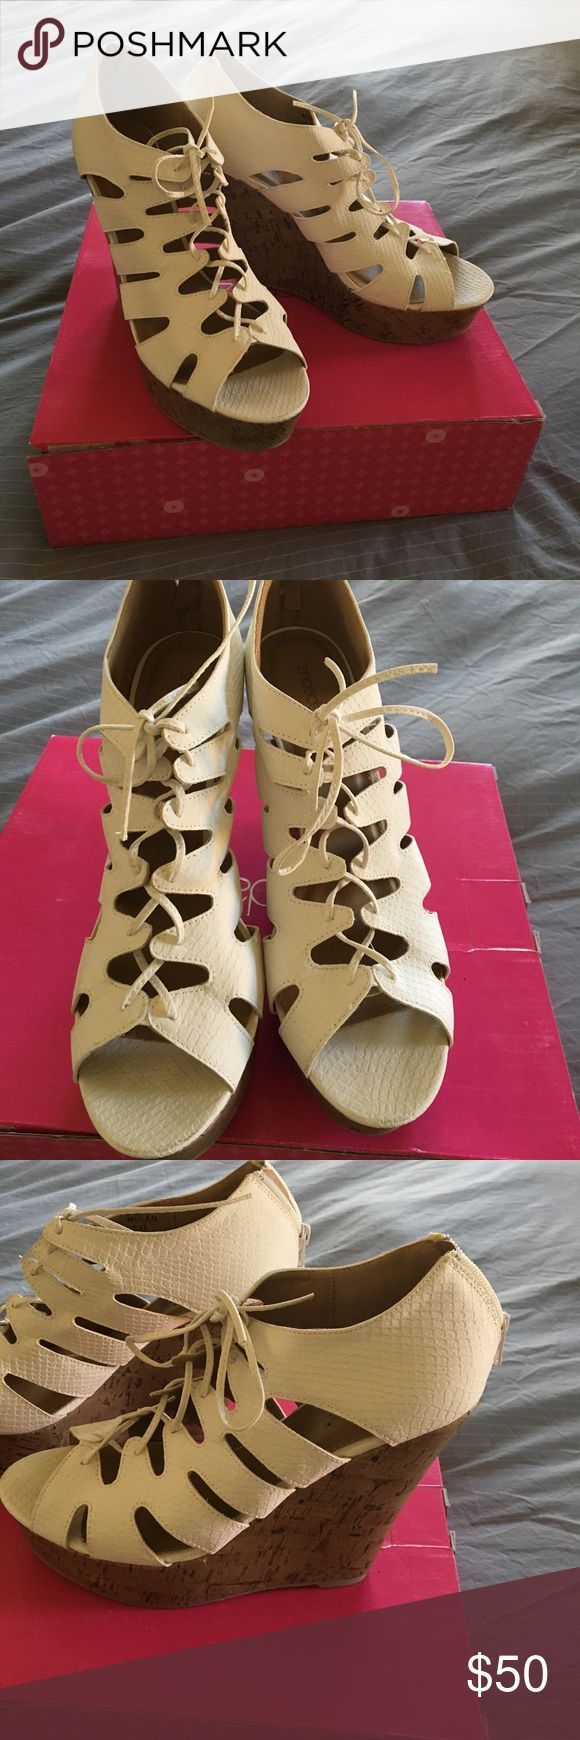 Shoedazzle White Cork Wedges Only worn once, they are a little too small for me. These are surprisingly easy to walk in and a such a cute caged style. The white part is a soft fake snake skin like material. ShoeDazzle Shoes Wedges